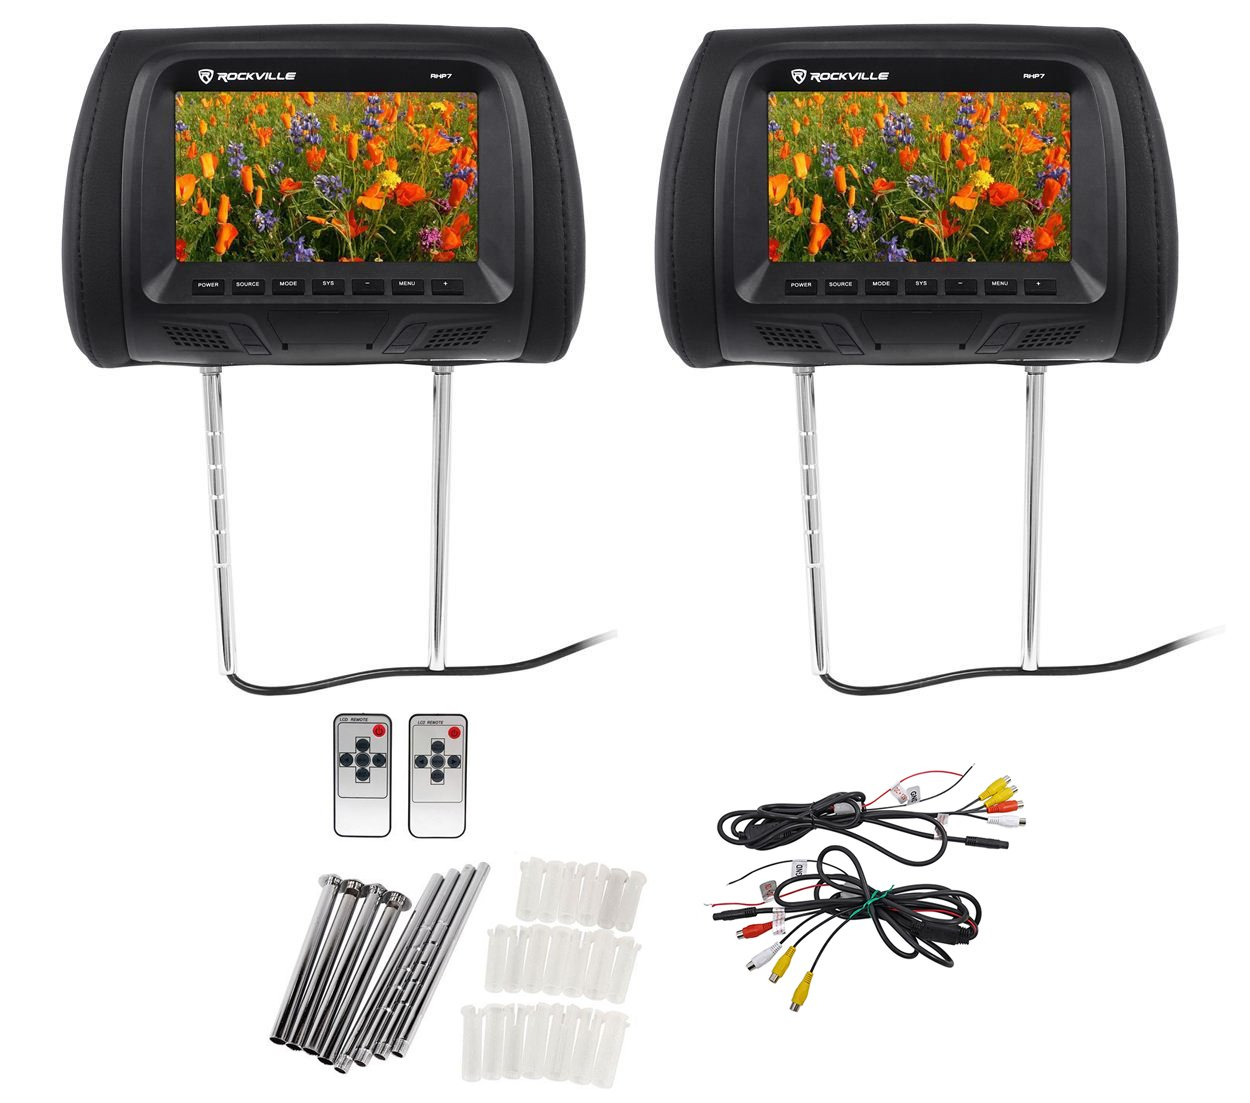 Pair Rockville Rhp7 Bk 7 Black Tft Lcd Car Headrest Tv Wiring Diagram For Cable Box To Dvd Monitors W Speakers Ir Electronics